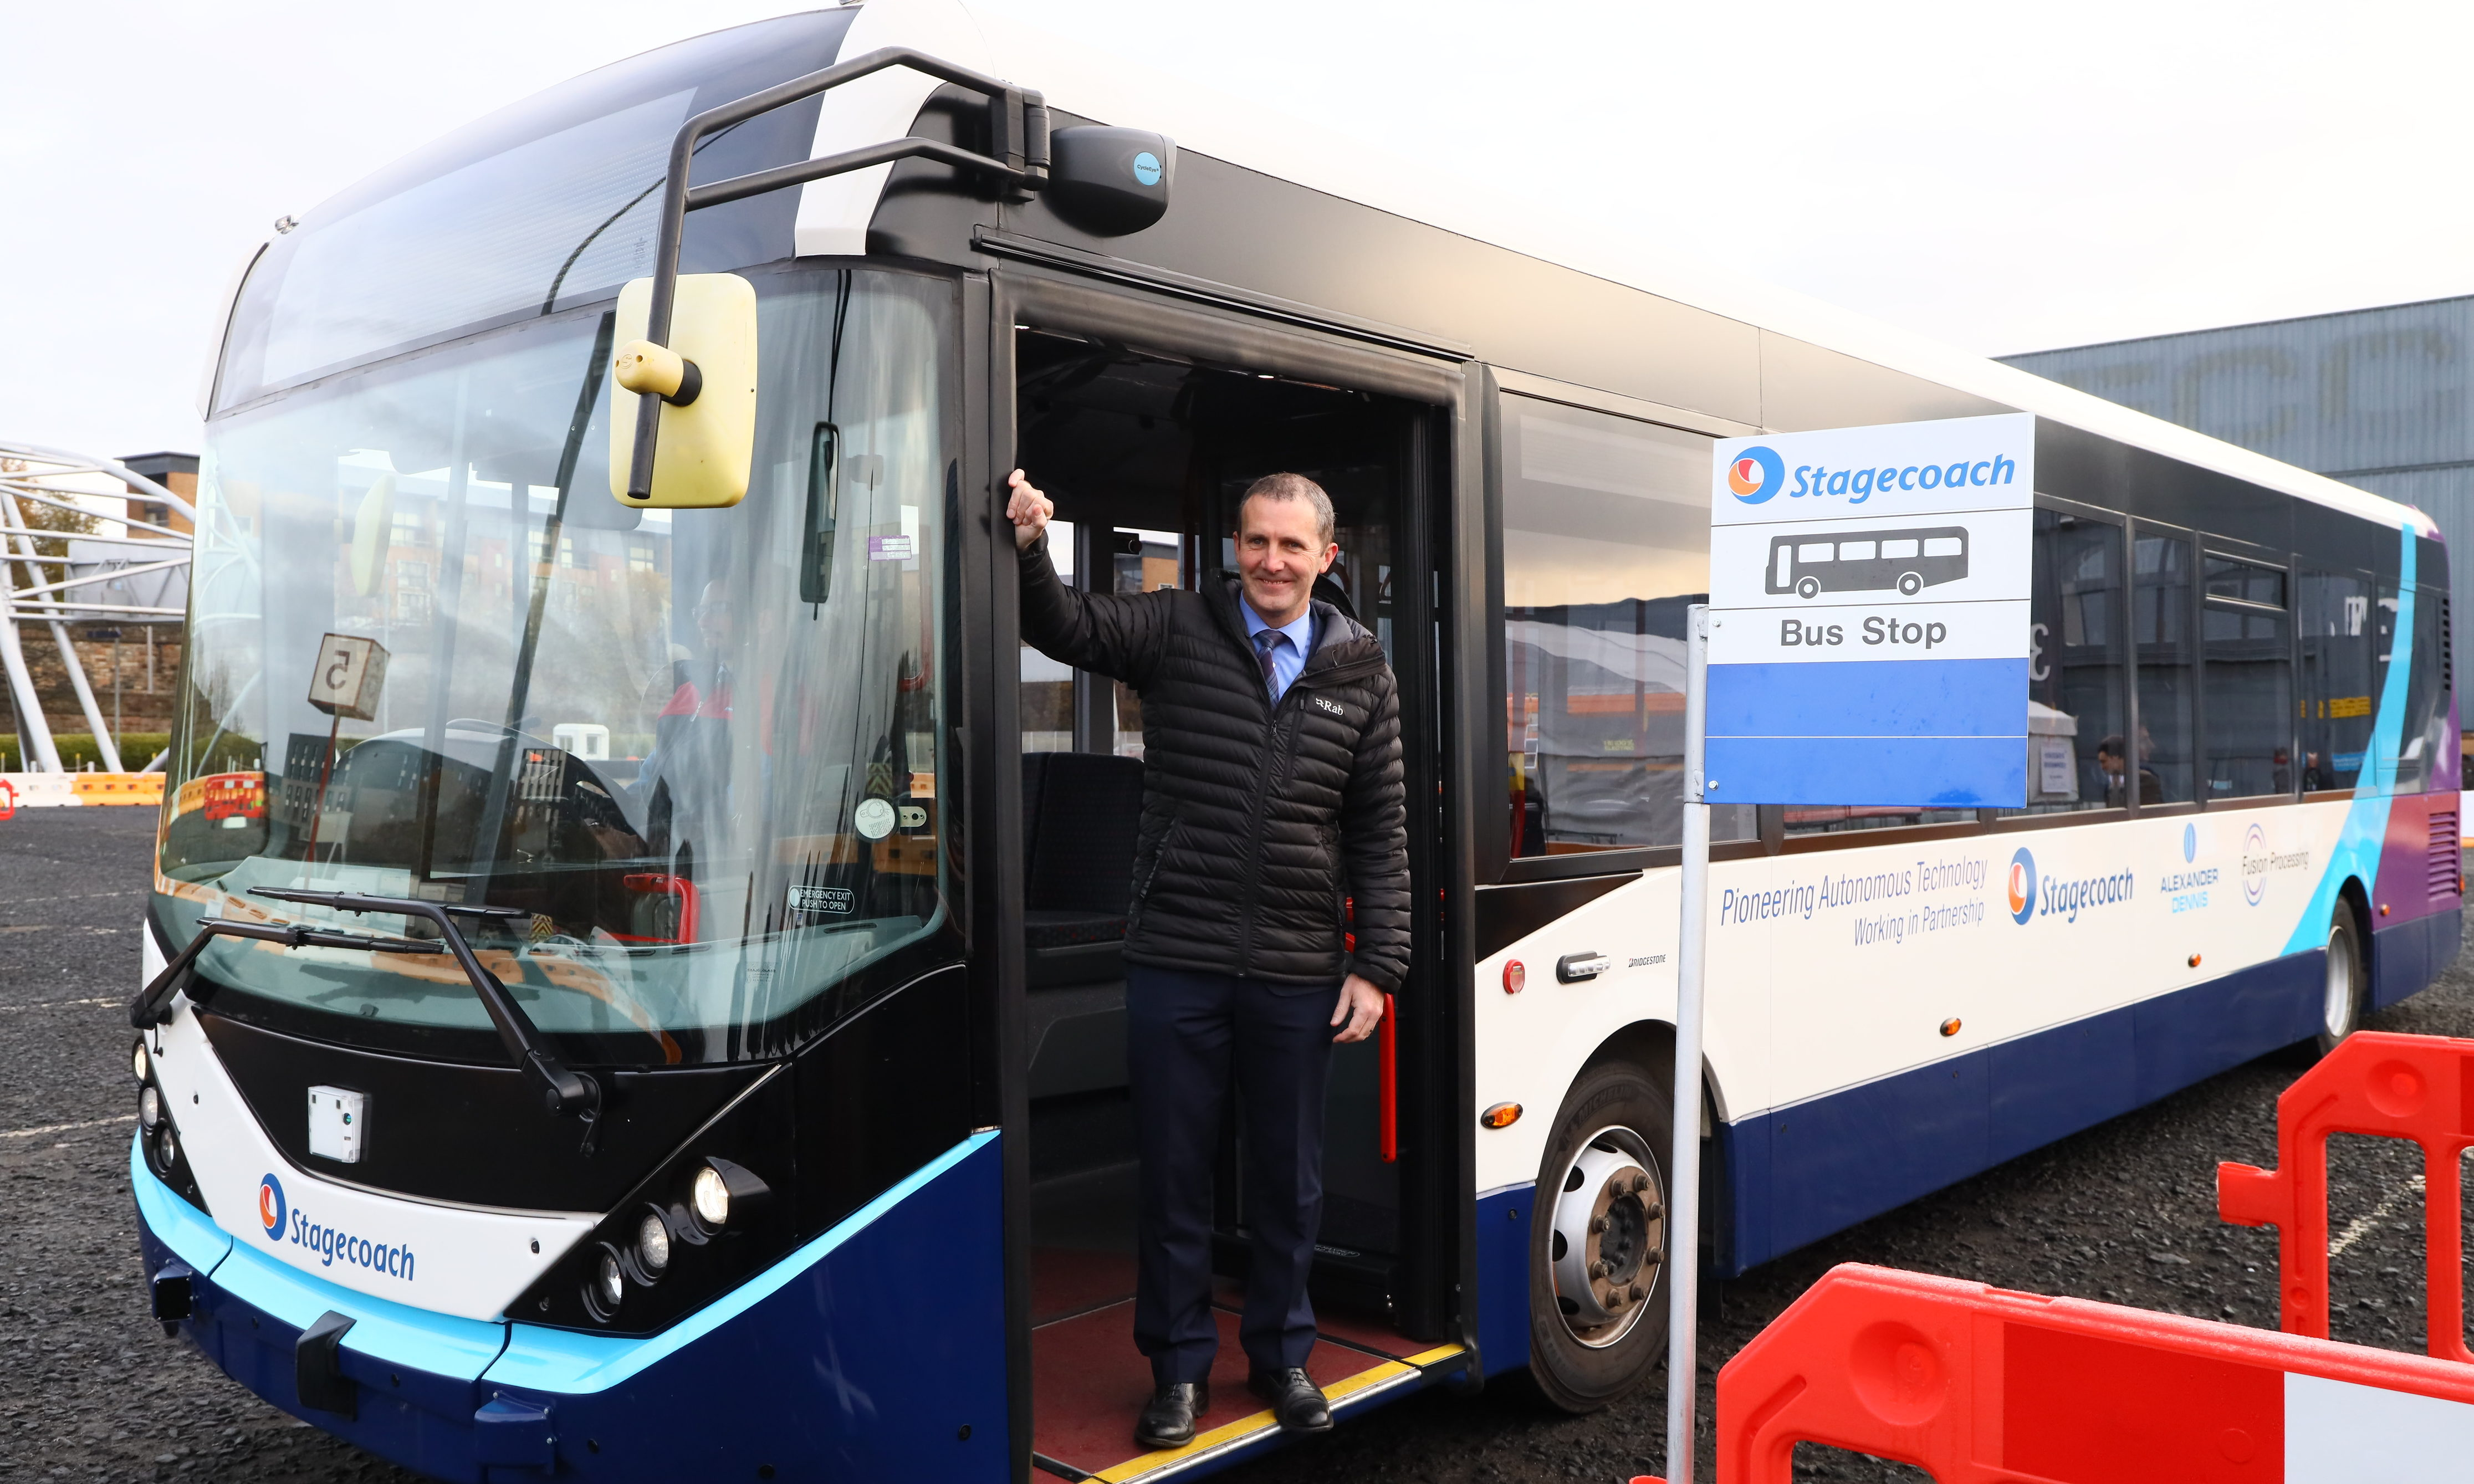 Michael Matheson on board the prototype bus.